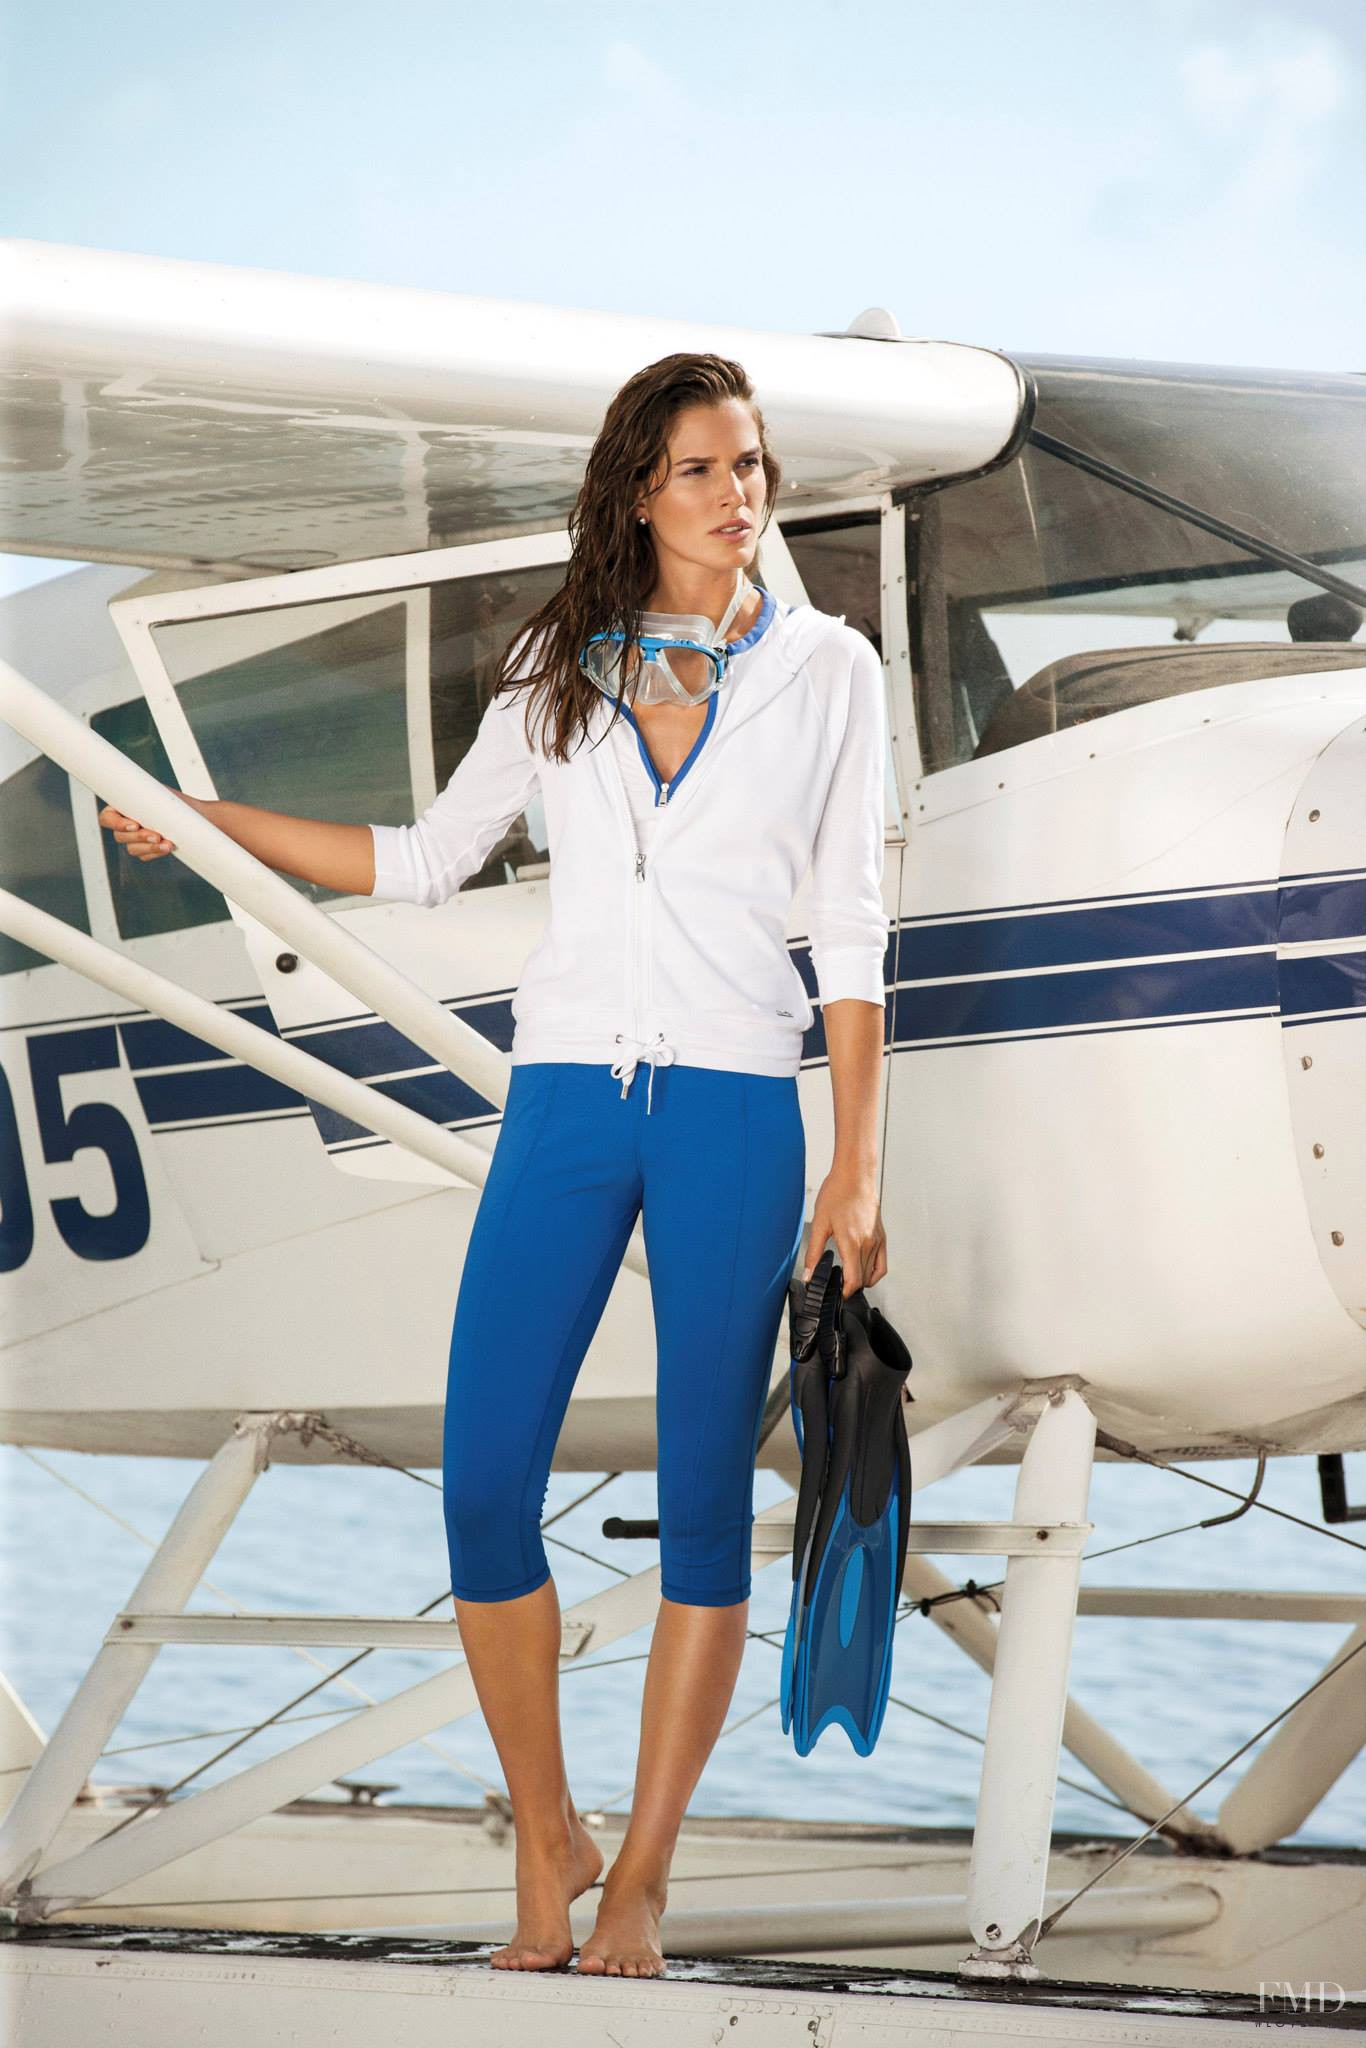 Chiara Baschetti featured in the Lauren by Ralph Lauren catalogue for Summer 2013. View this photograph in high resolution